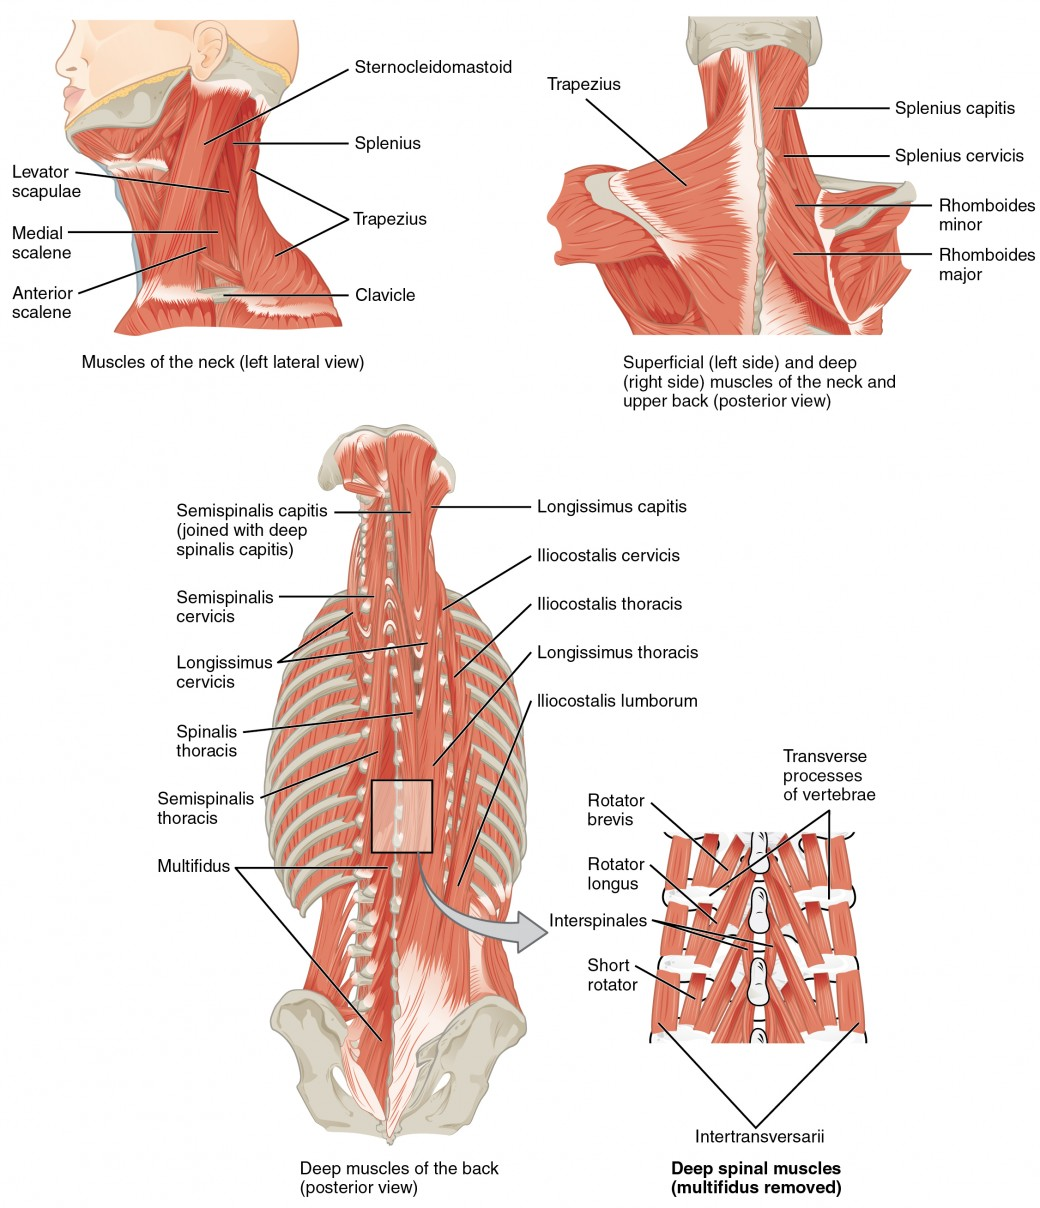 hight resolution of the top left panel shows a lateral view of the muscles of the neck and